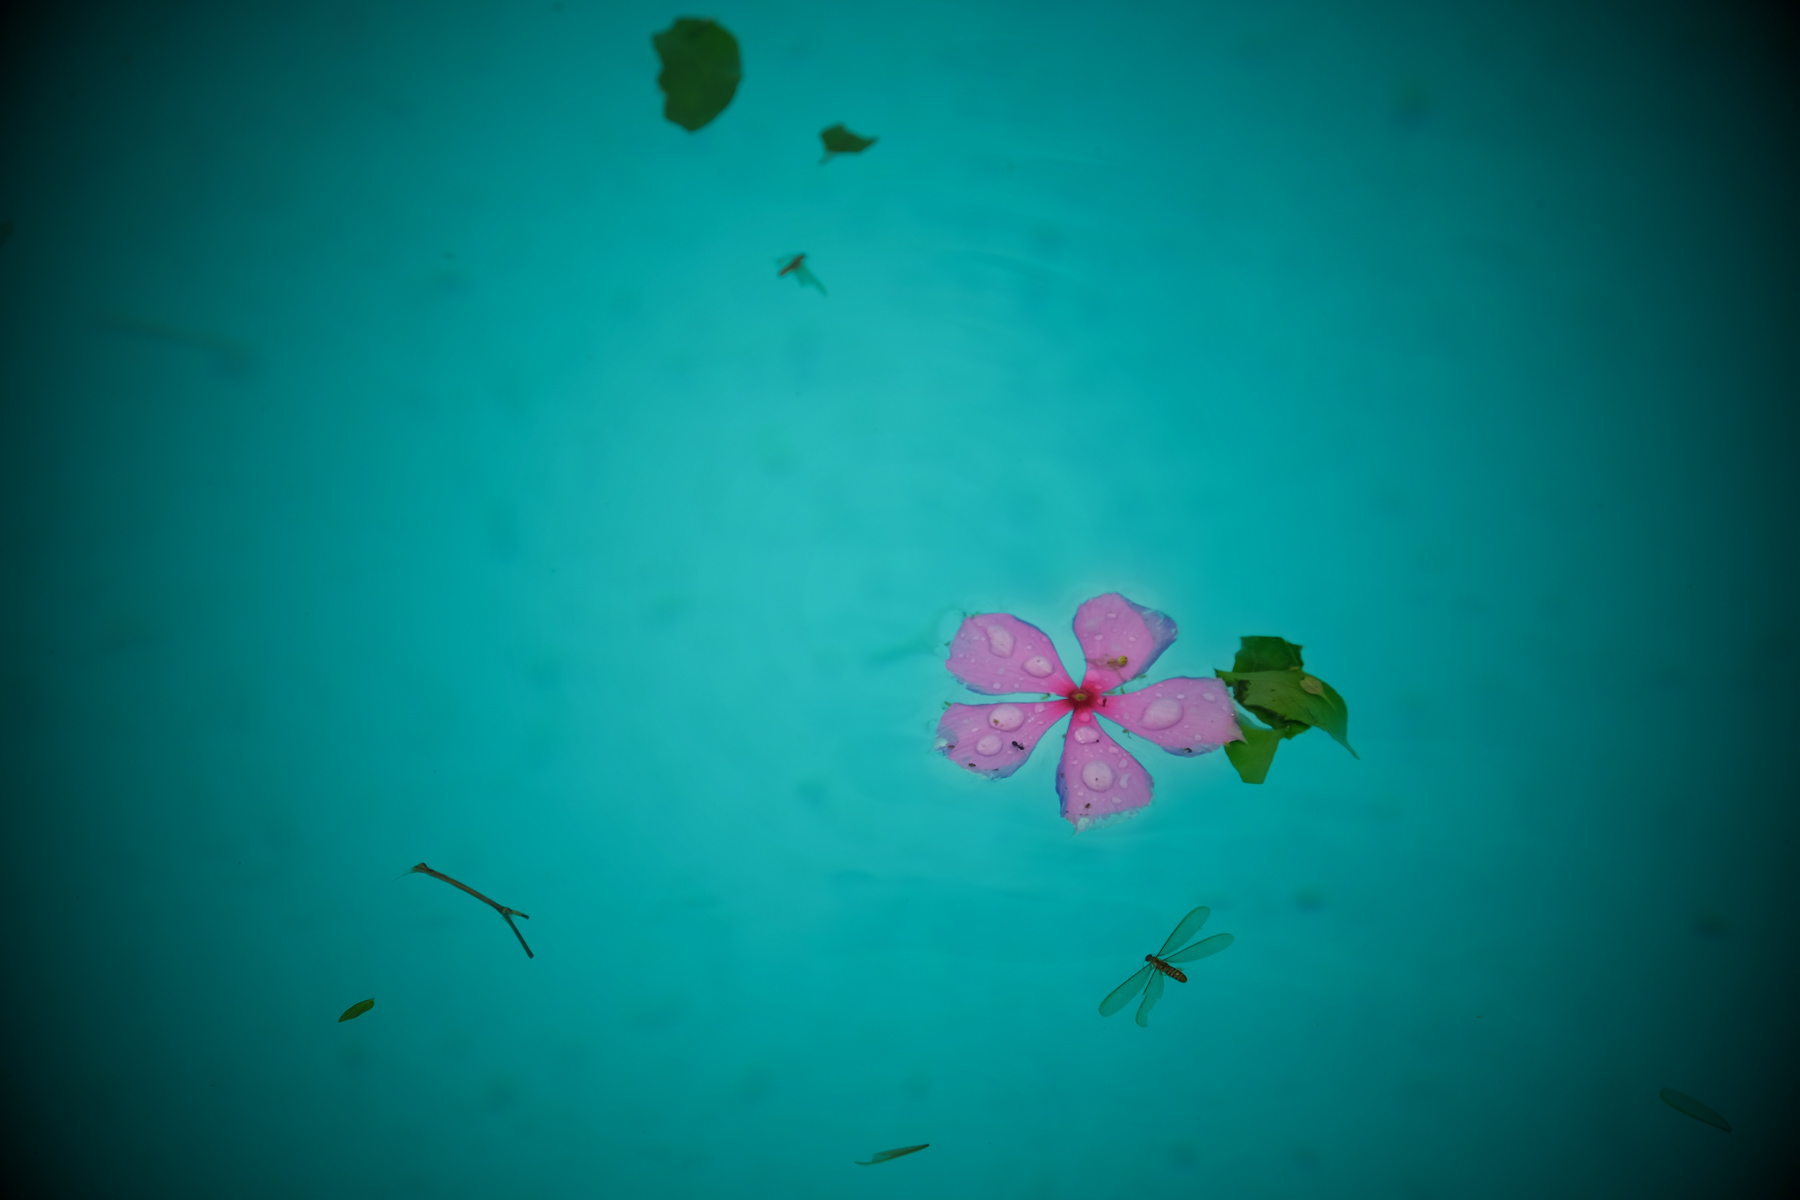 after the storm, blues, fallen leaves, flower, meditation, mlancholy, moody, pastel colours, pink flower, pool, rain drops, rainy, rainy season, serene*rain, storm, swimmingpool, tropical